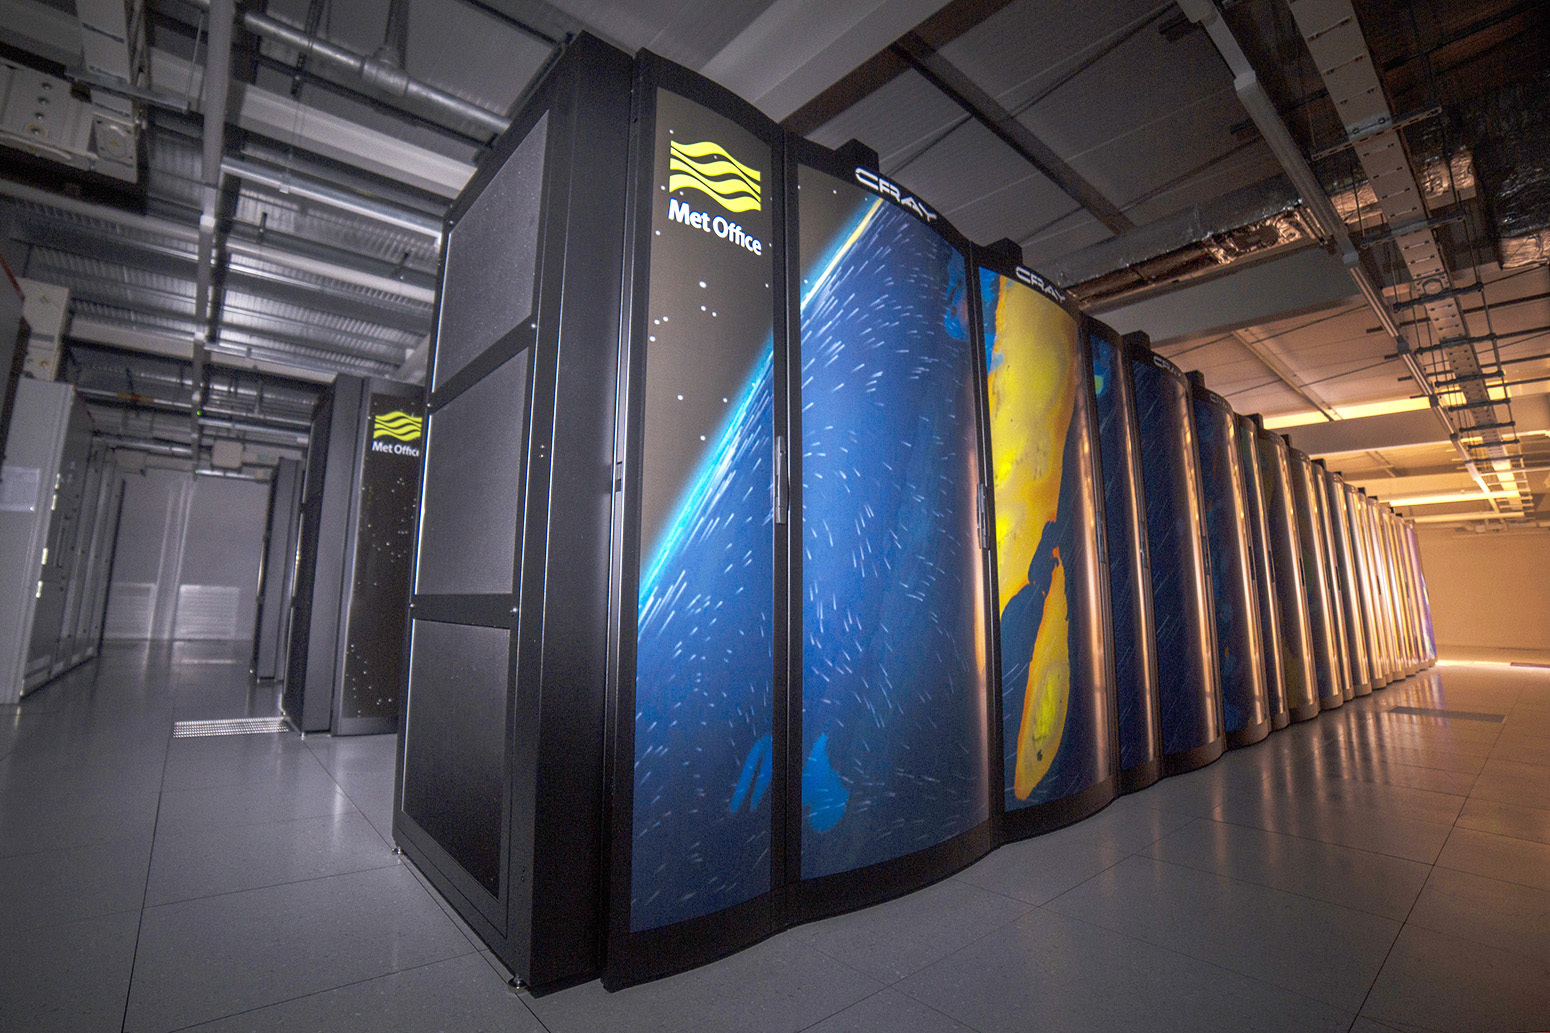 The Cray XC40 supercomputer used by Met Office climate scientists. Credit: Met Office.